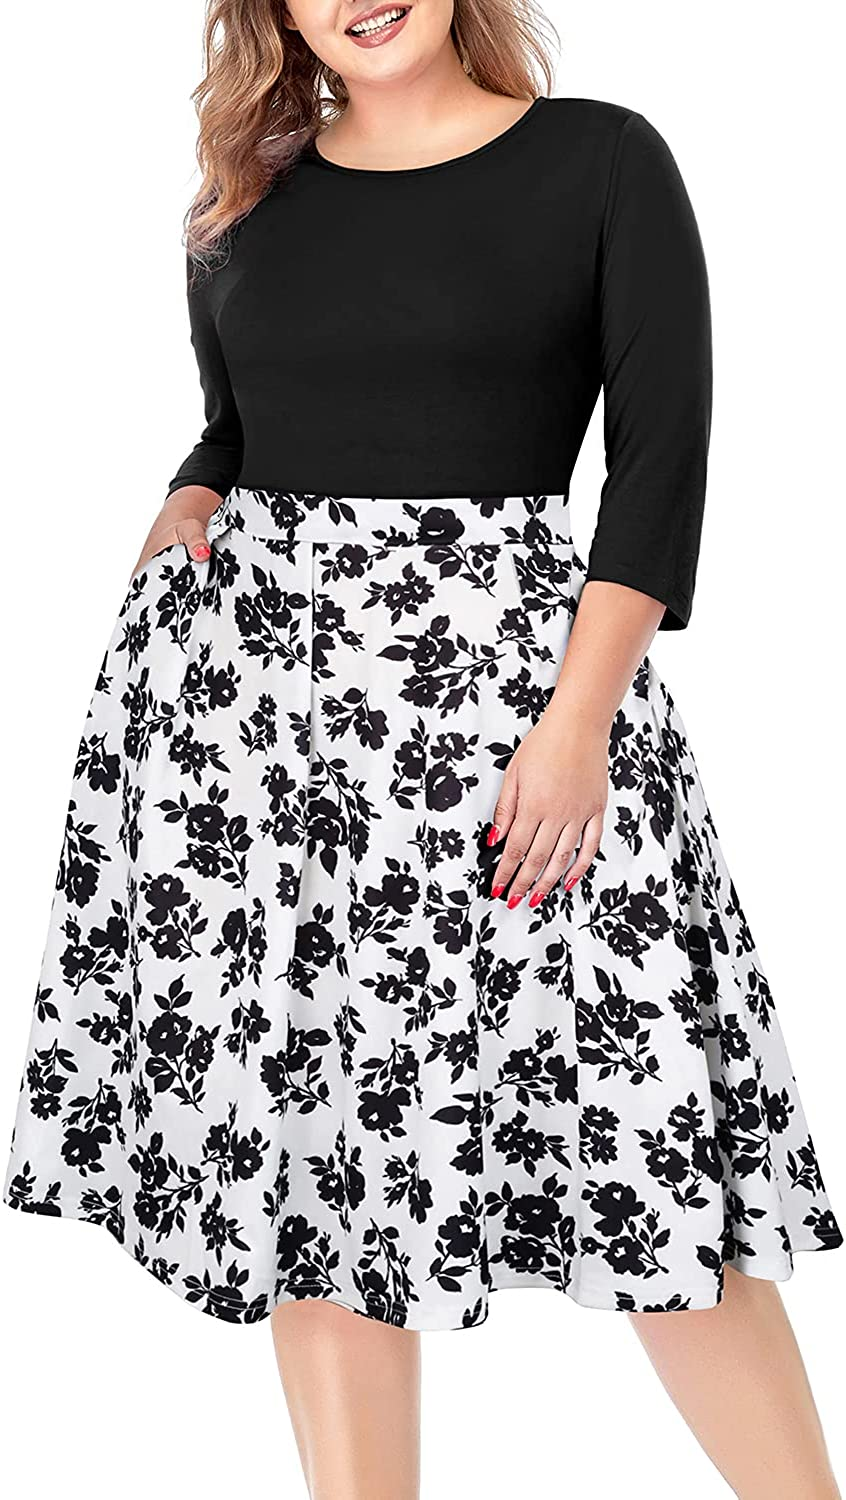 Women's Plus Size Floral Dresses Round Neck 3/4 Sleeve Fit and Flare Casual Dress with Pockets